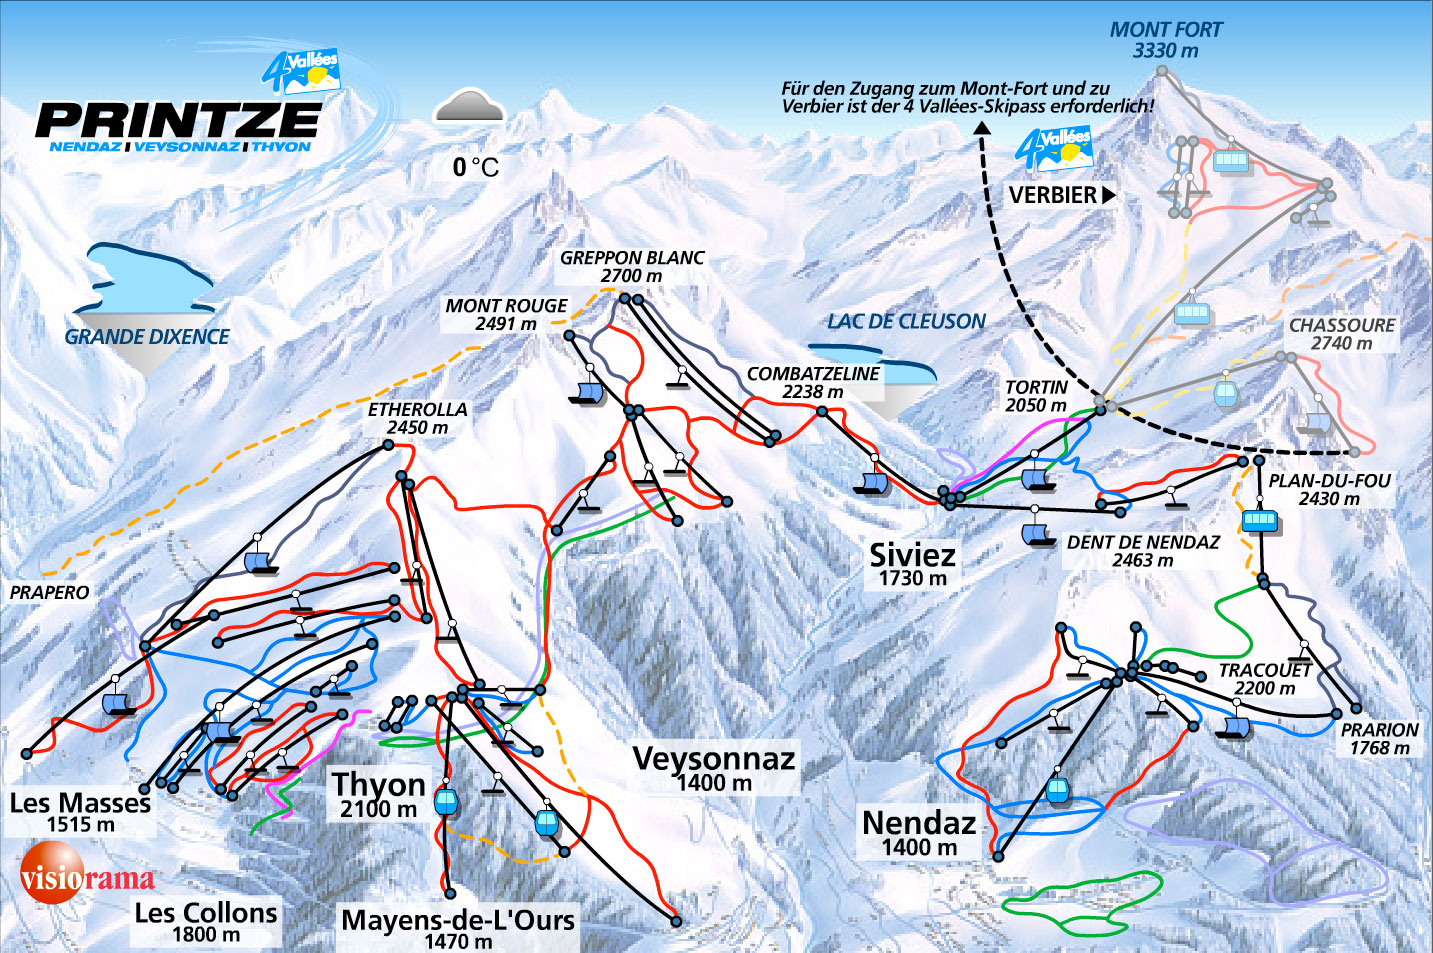 NENDAZ MAP WinterSportscom